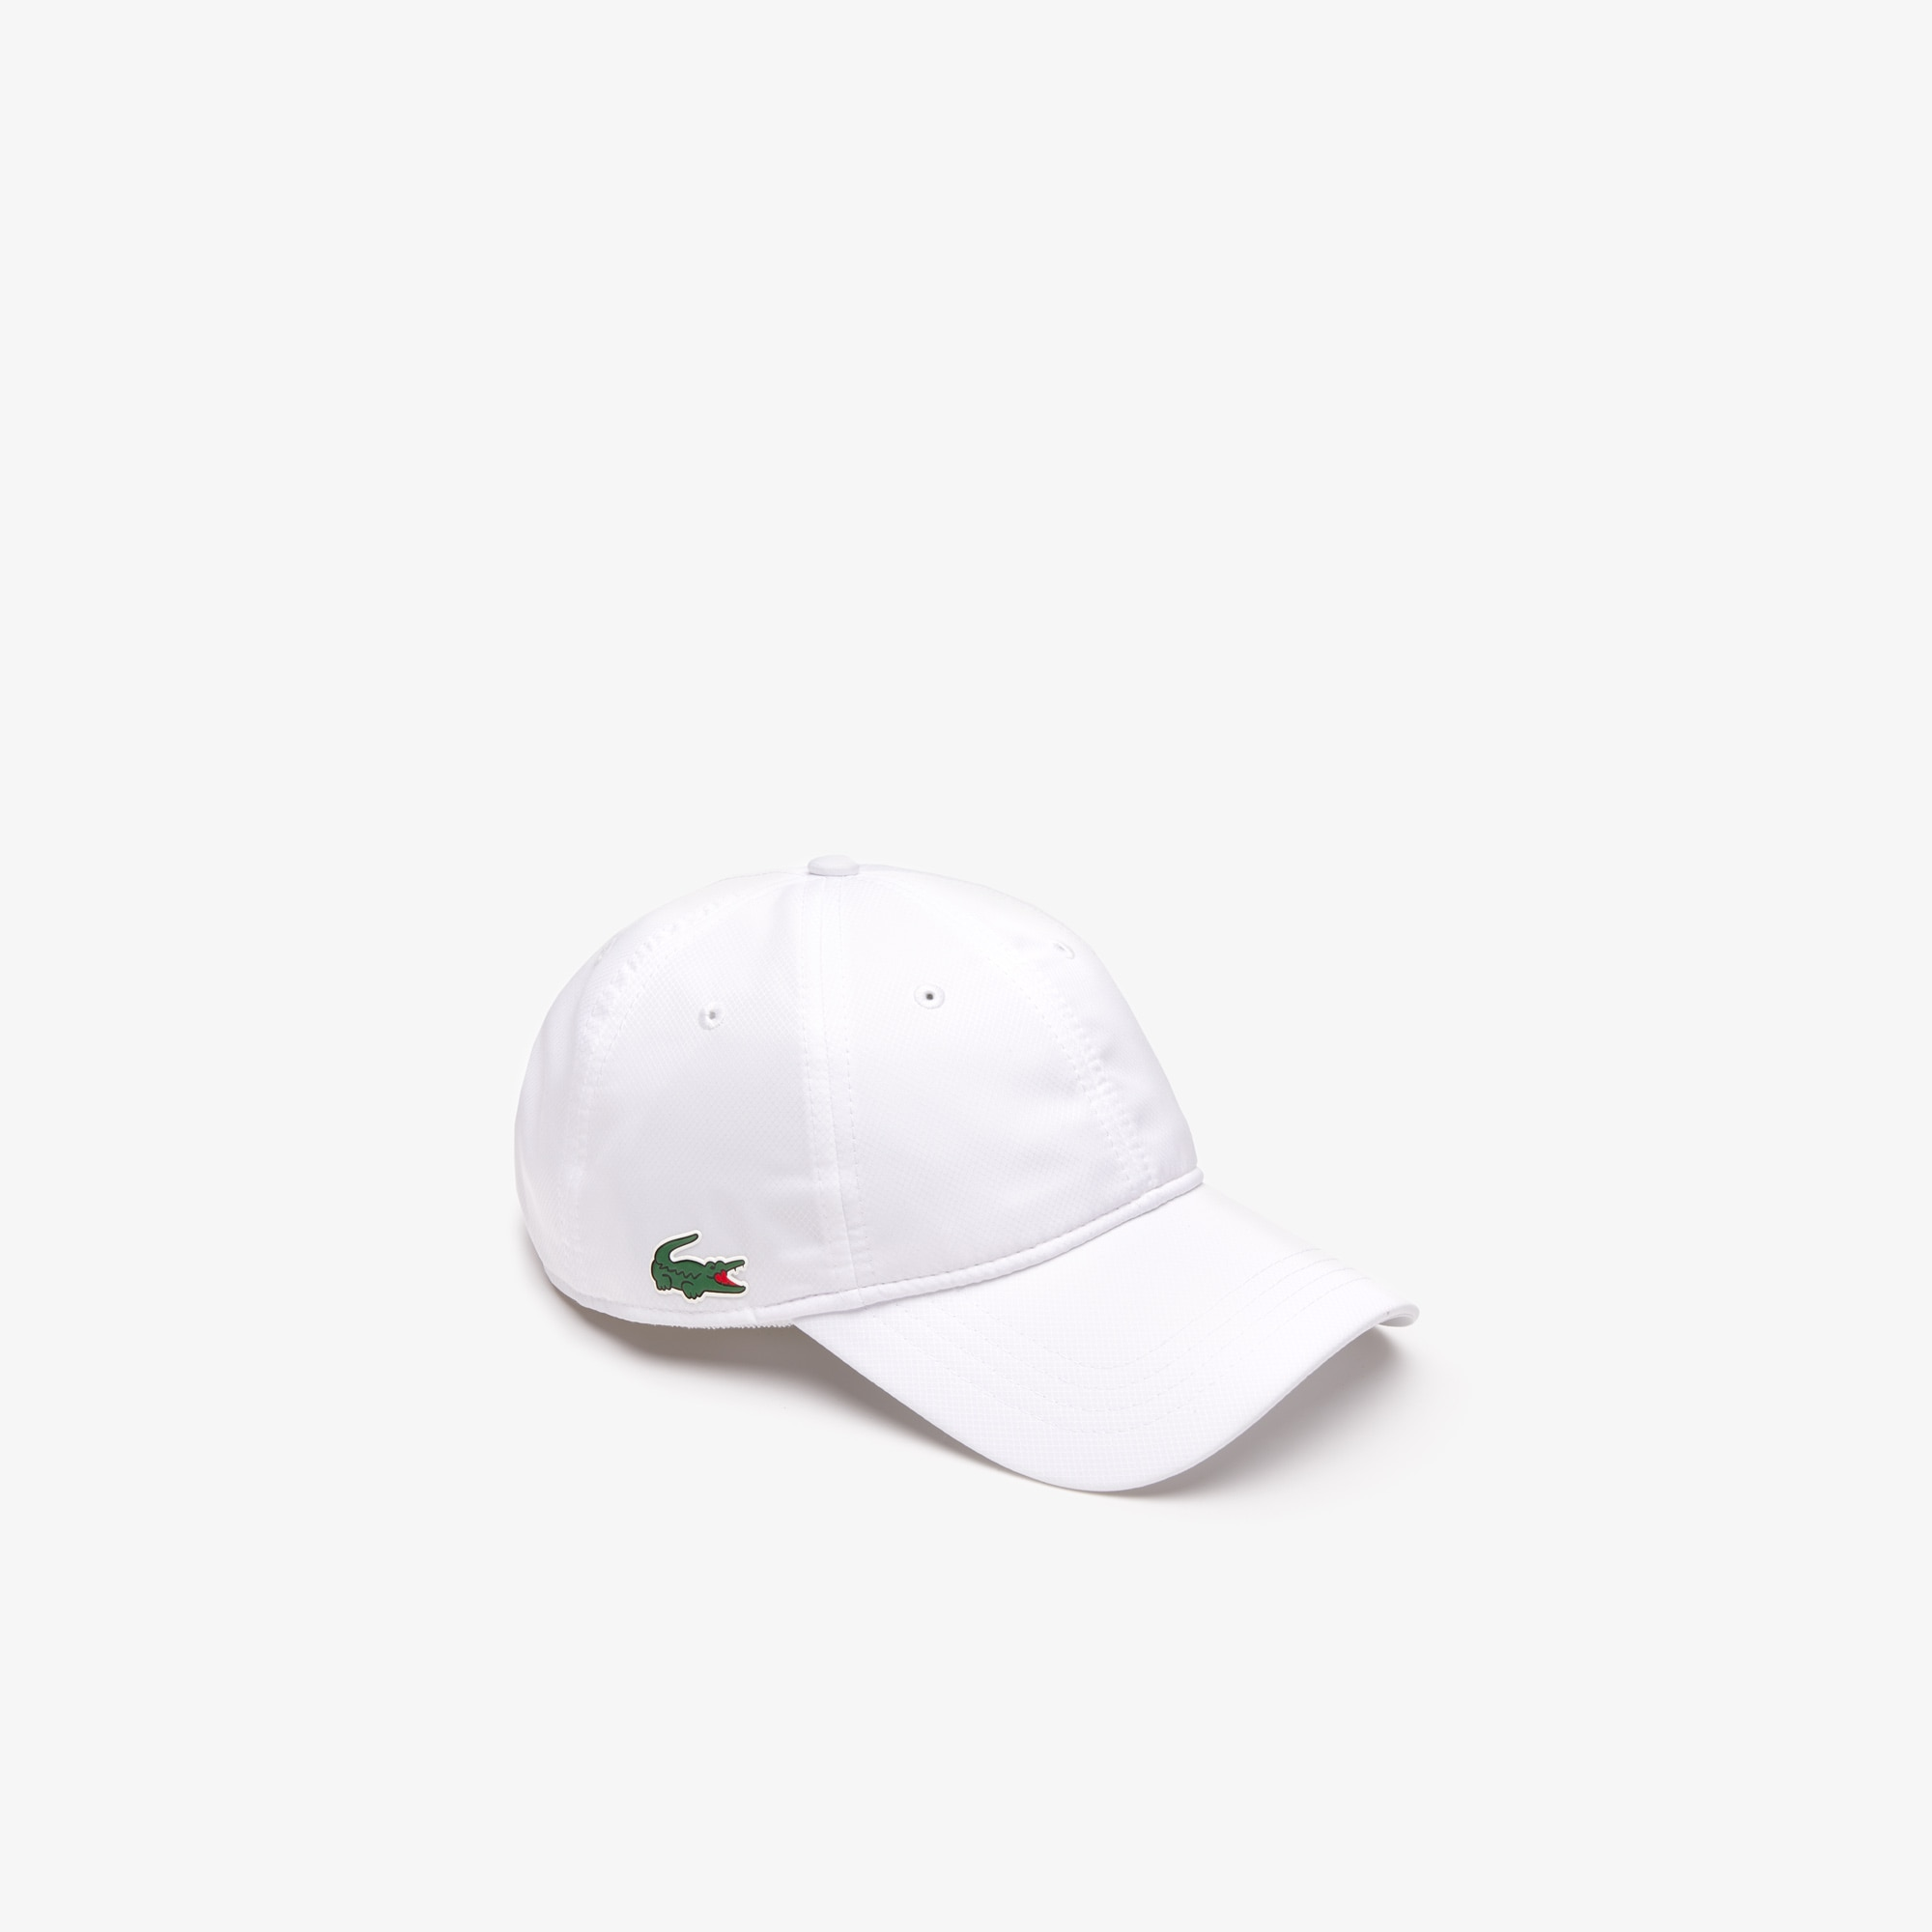 a98330ec58b8a Men s Lacoste SPORT cap in solid diamond weave taffeta